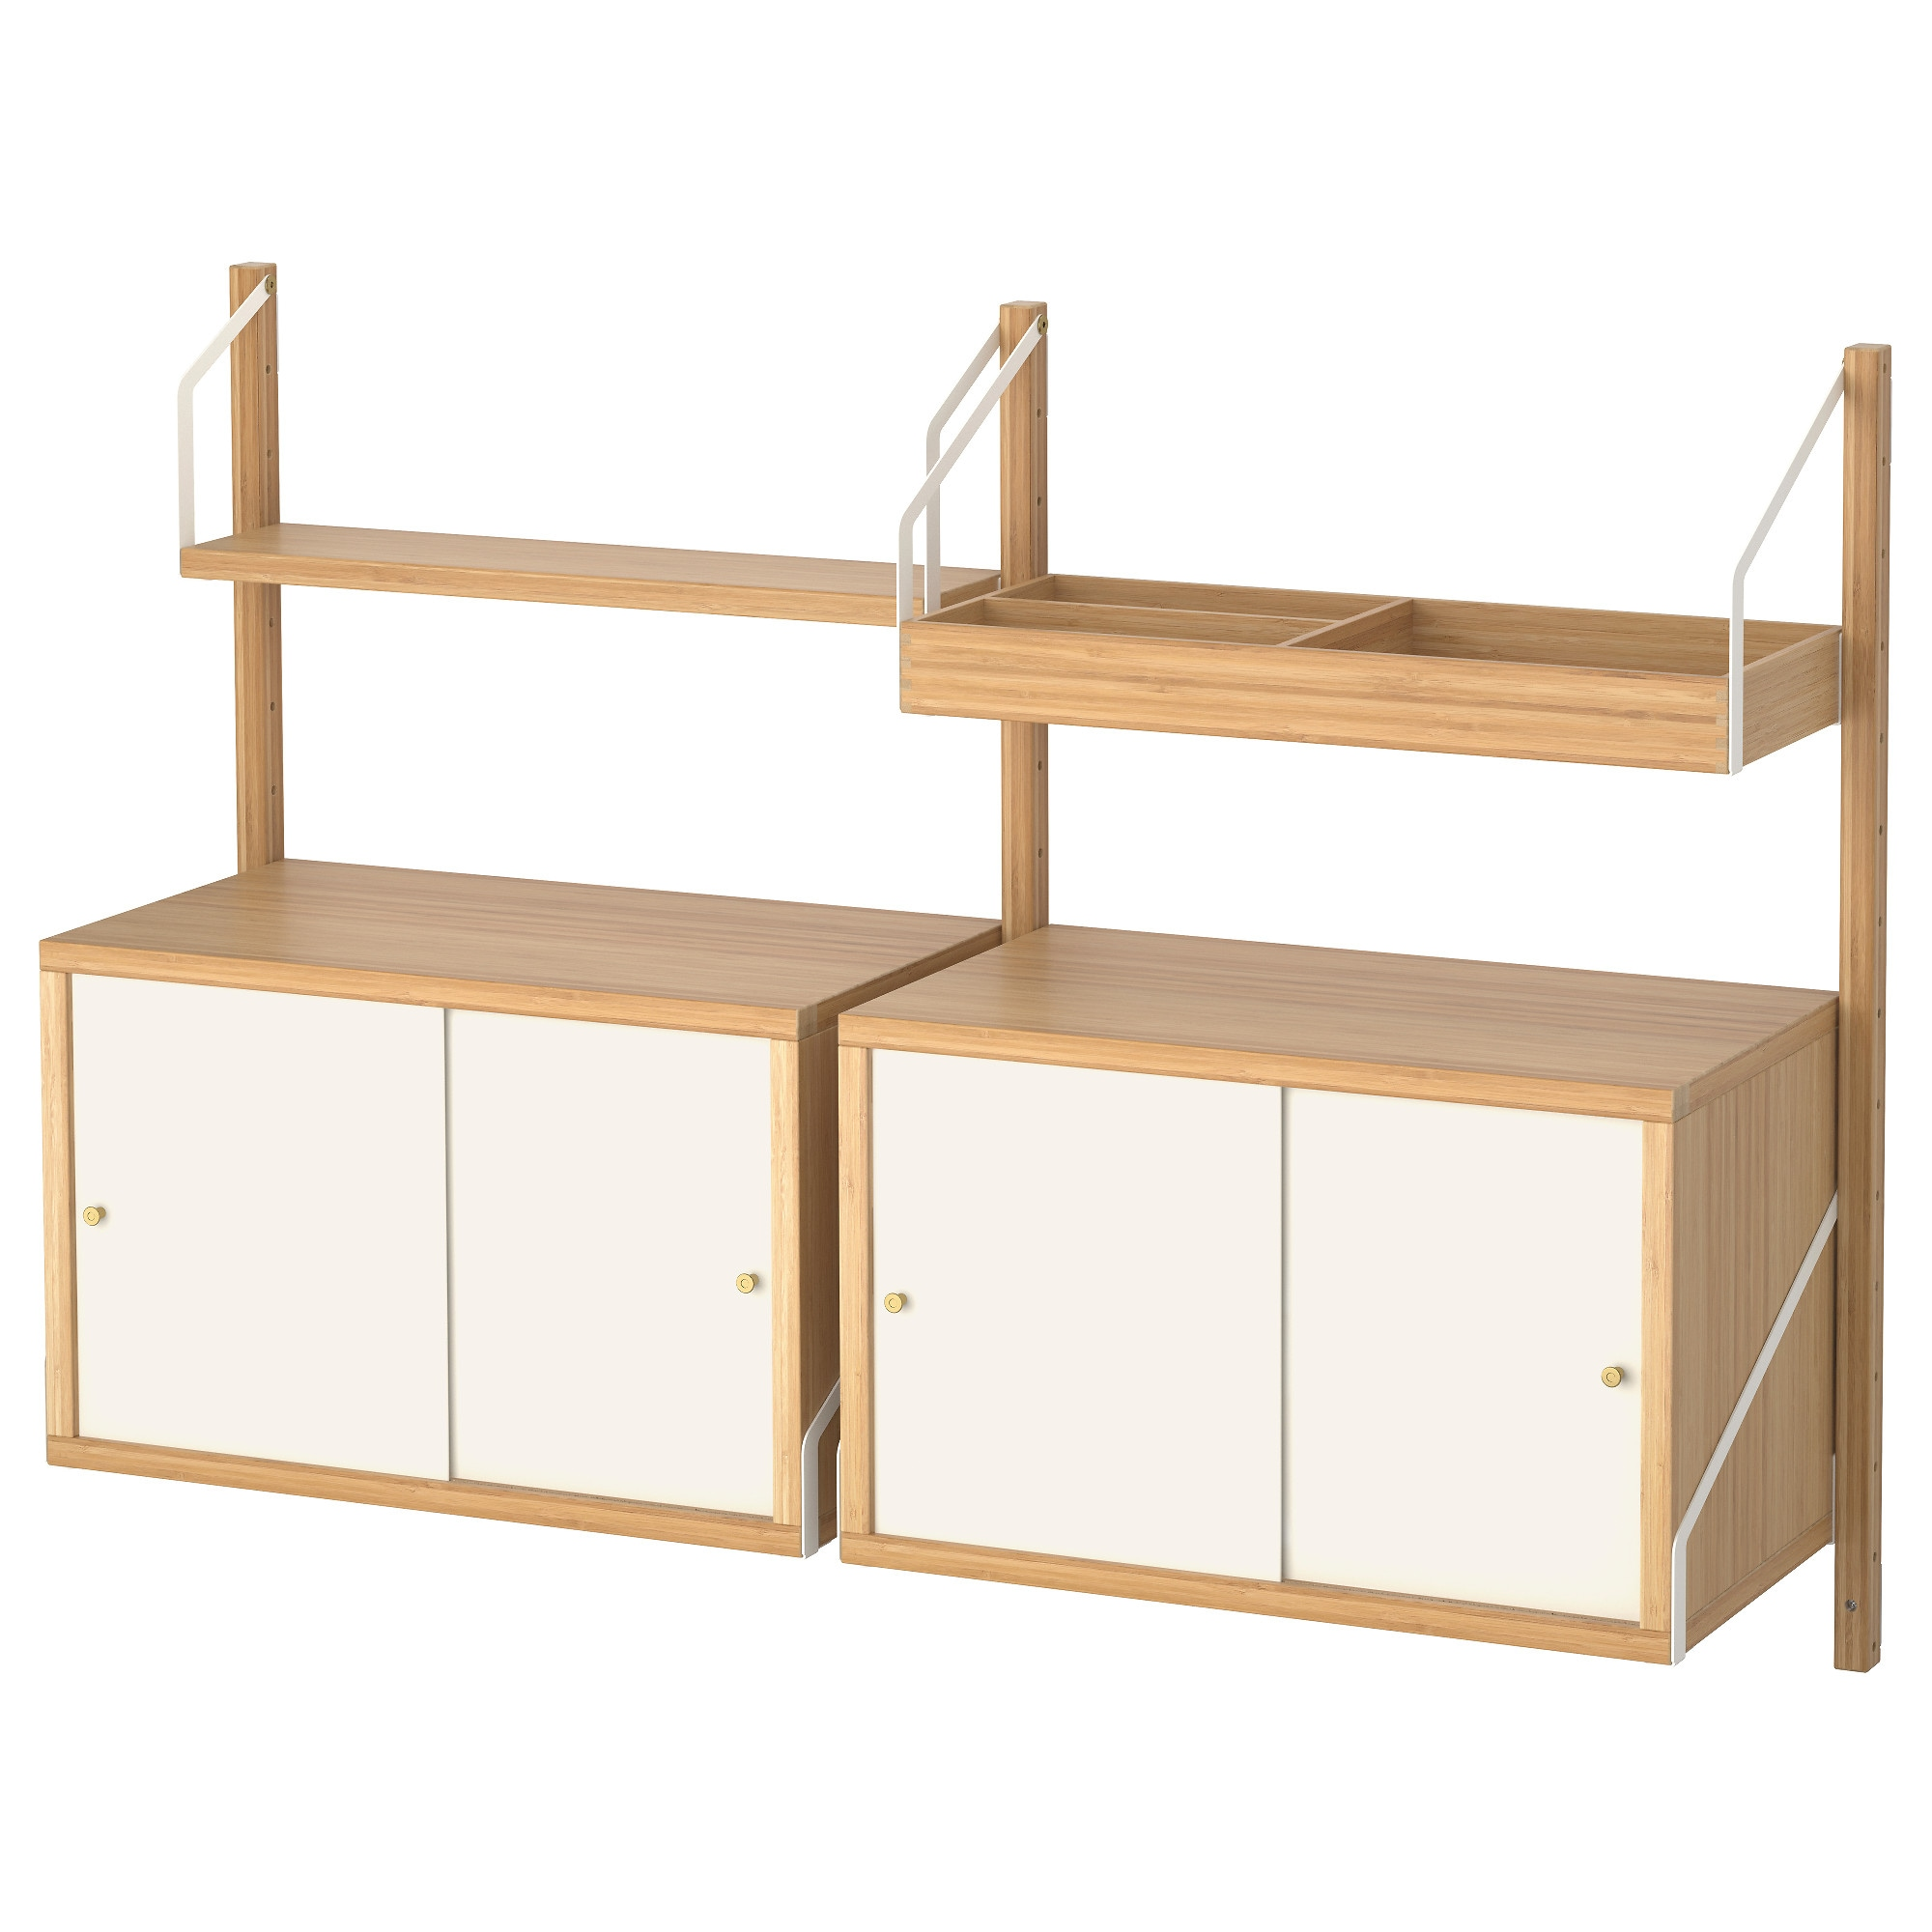 SVALN S wall mounted storage combination  bamboo  white Width  51 1 8. Shelves   Shelving Units   IKEA